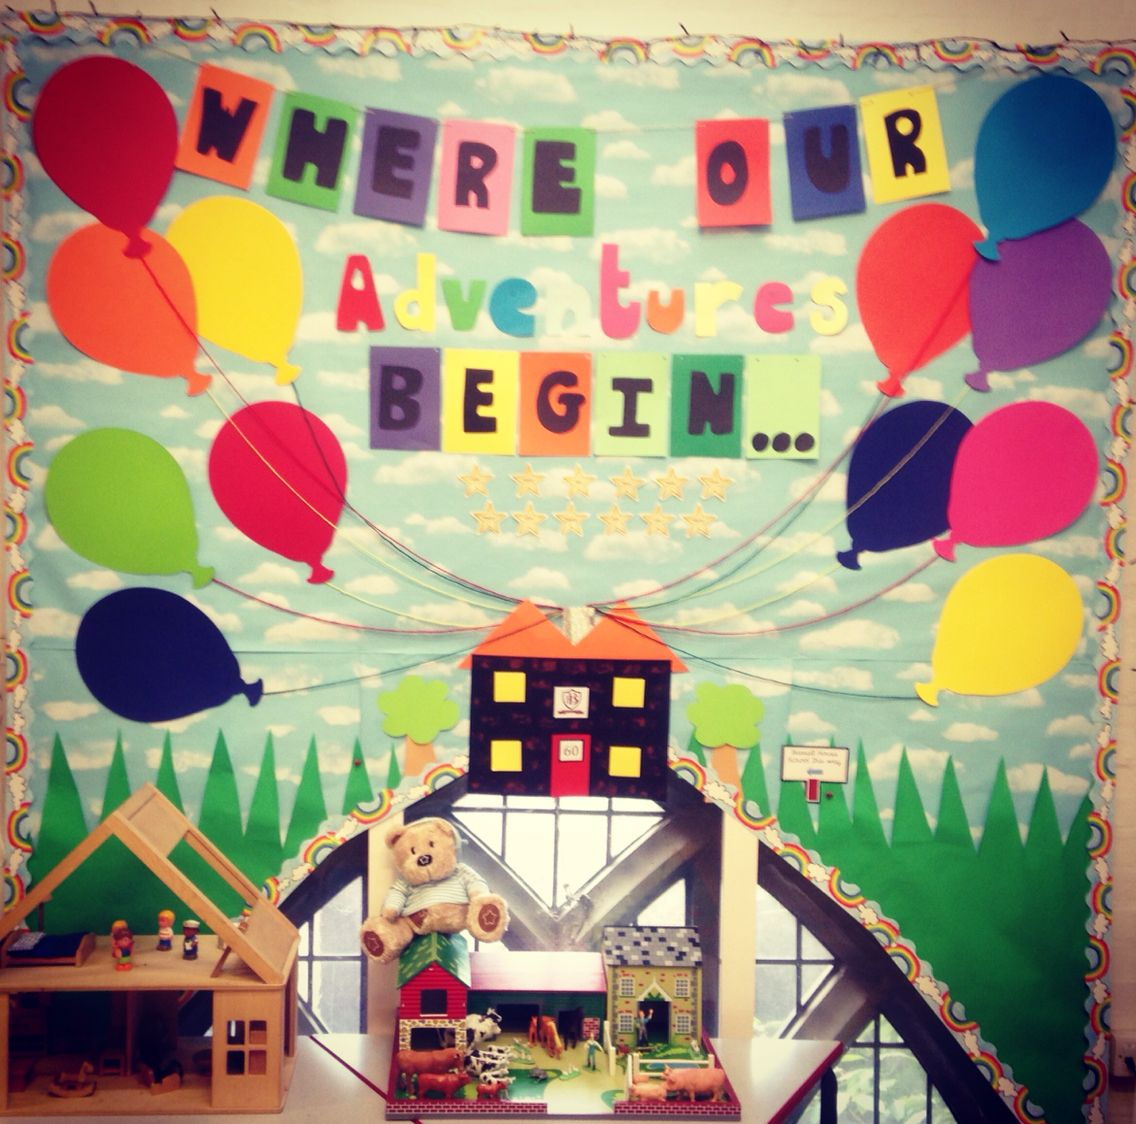 A welcoming display for my reception children who have their own balloon!